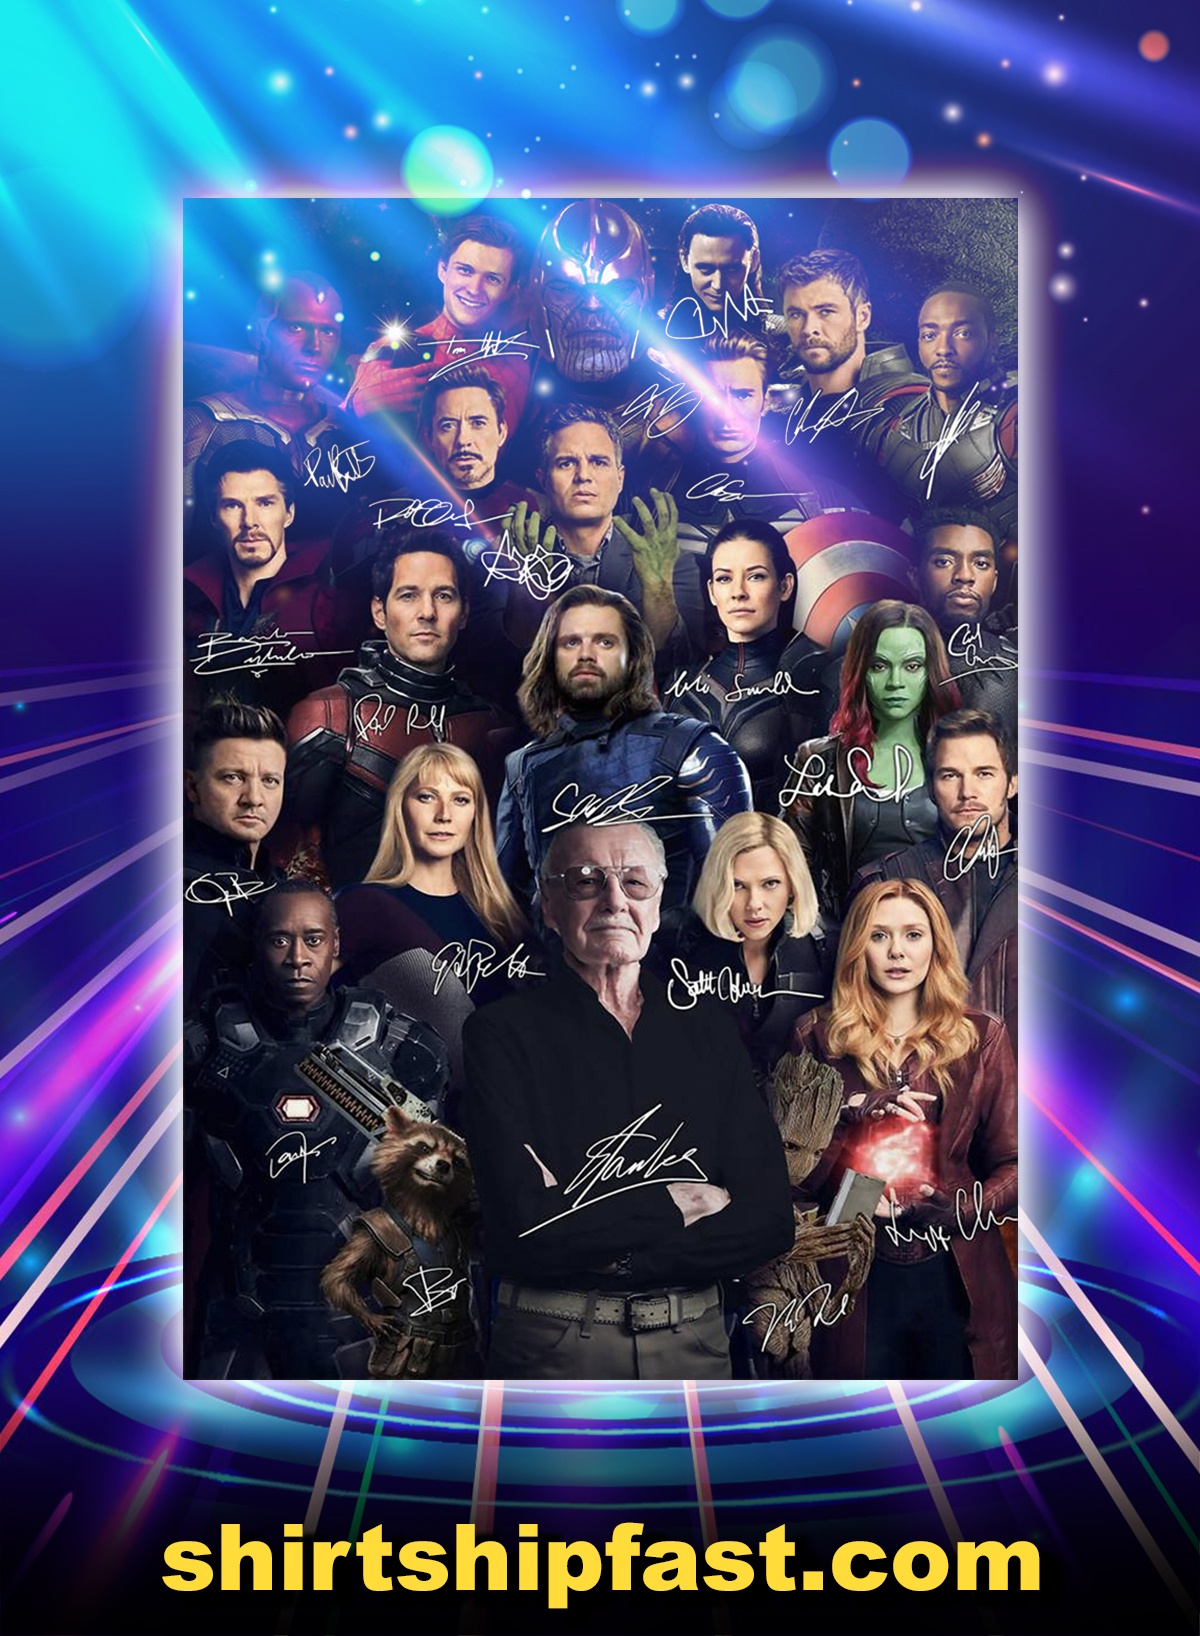 Stan lee avengers signature poster - A1